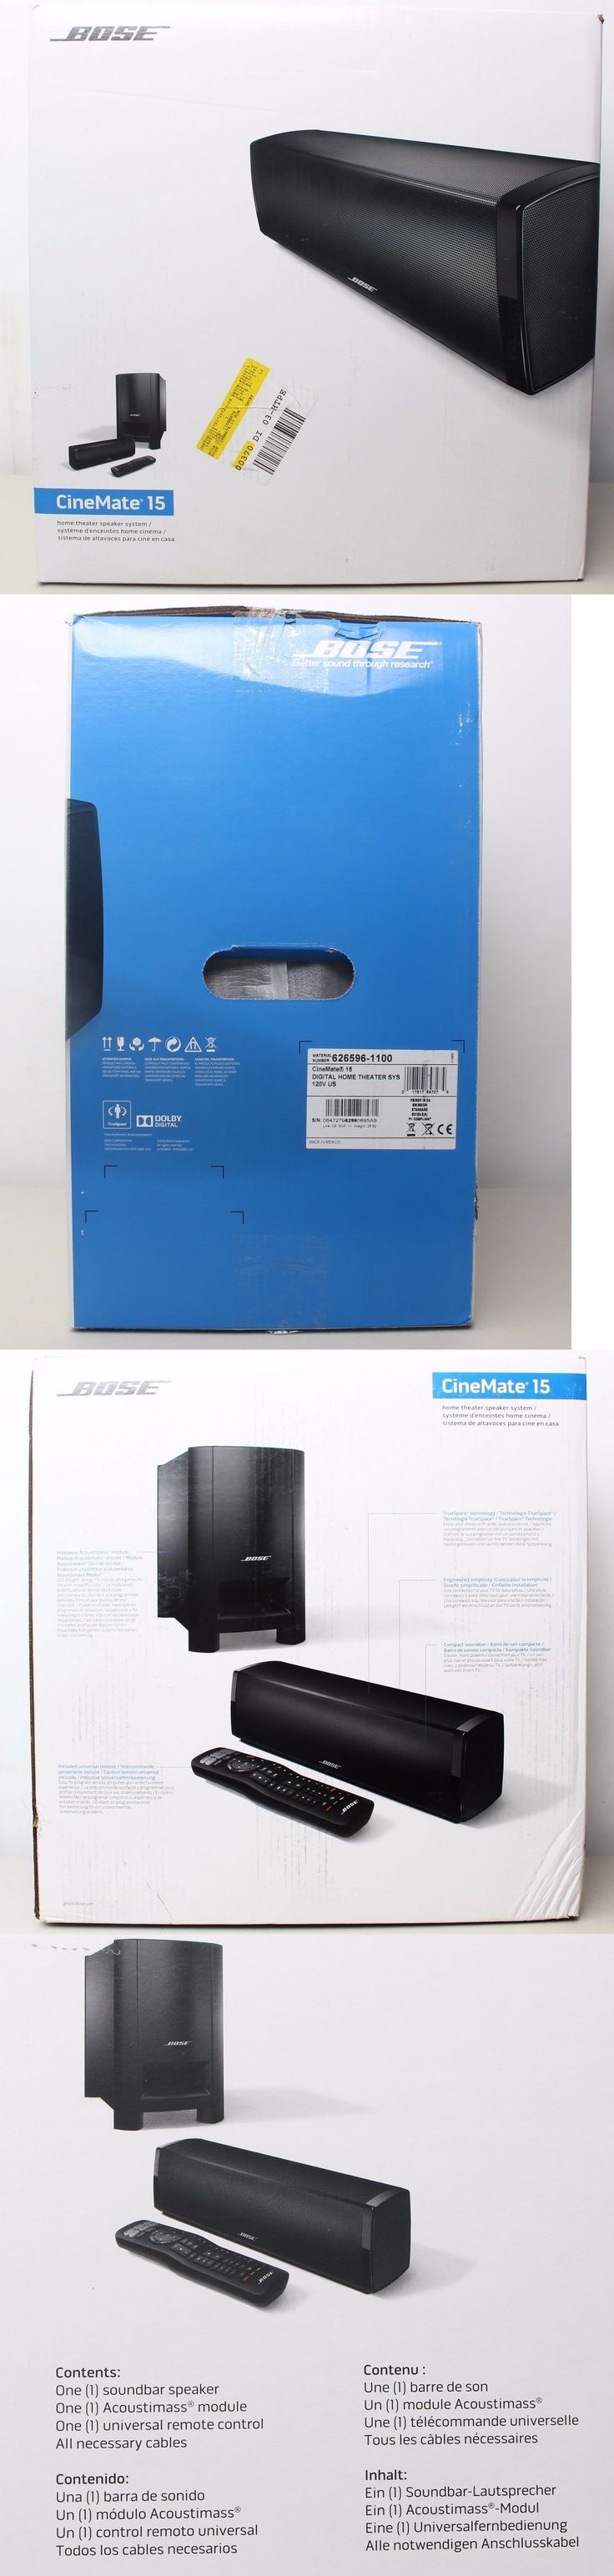 Bose soundtouch 130 home theater system black 738484 1100 b amp h - Home Theater Systems Bose Cinemate 15 Home Theater Speaker System W Acoustimass Subwoofer Remote